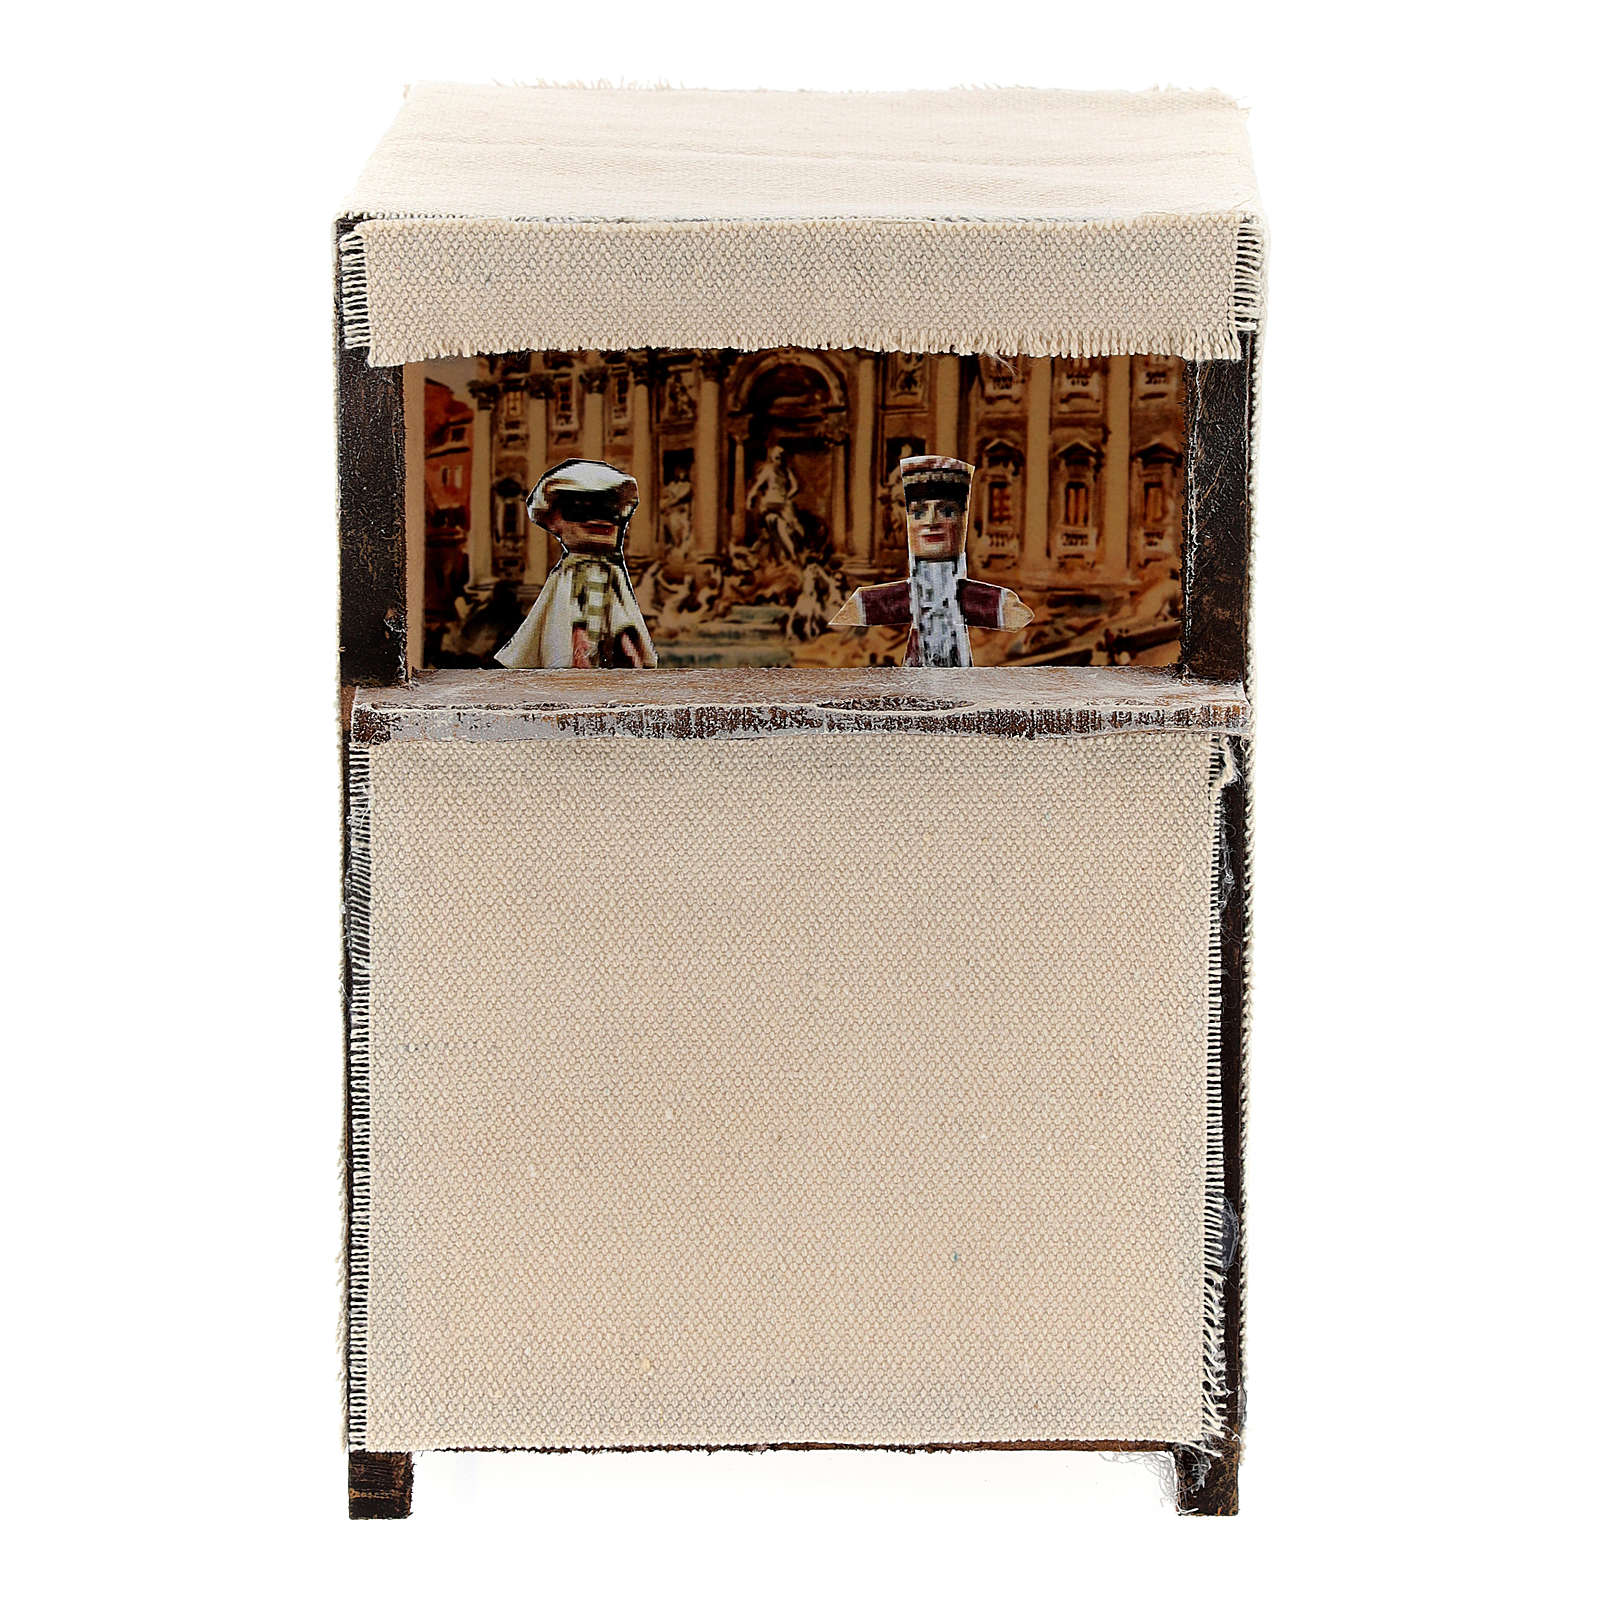 Puppet theatre for 12 cm Nativity scene 4